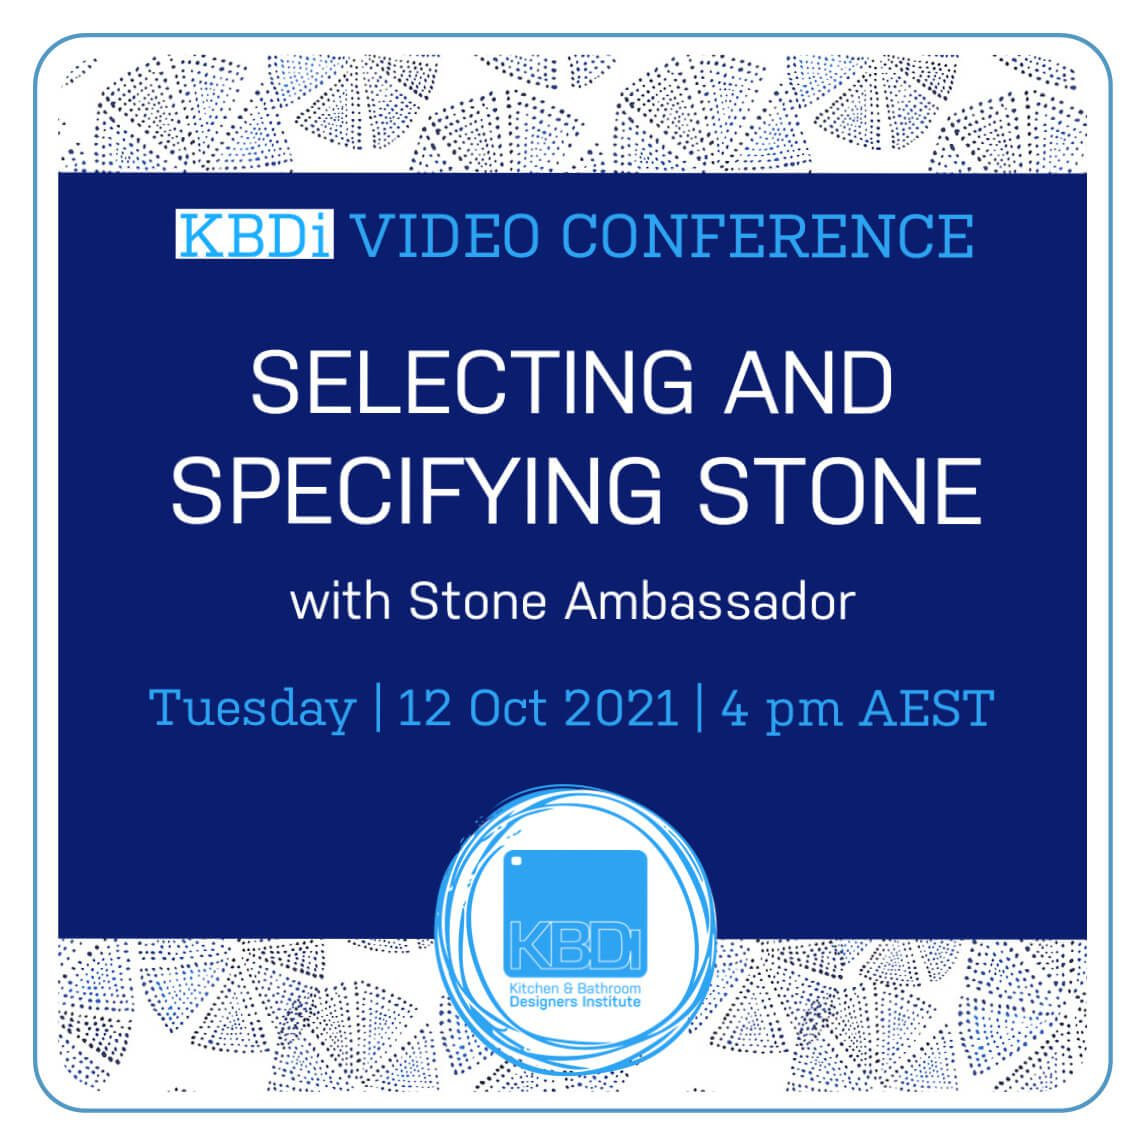 Selecting and specifying stone